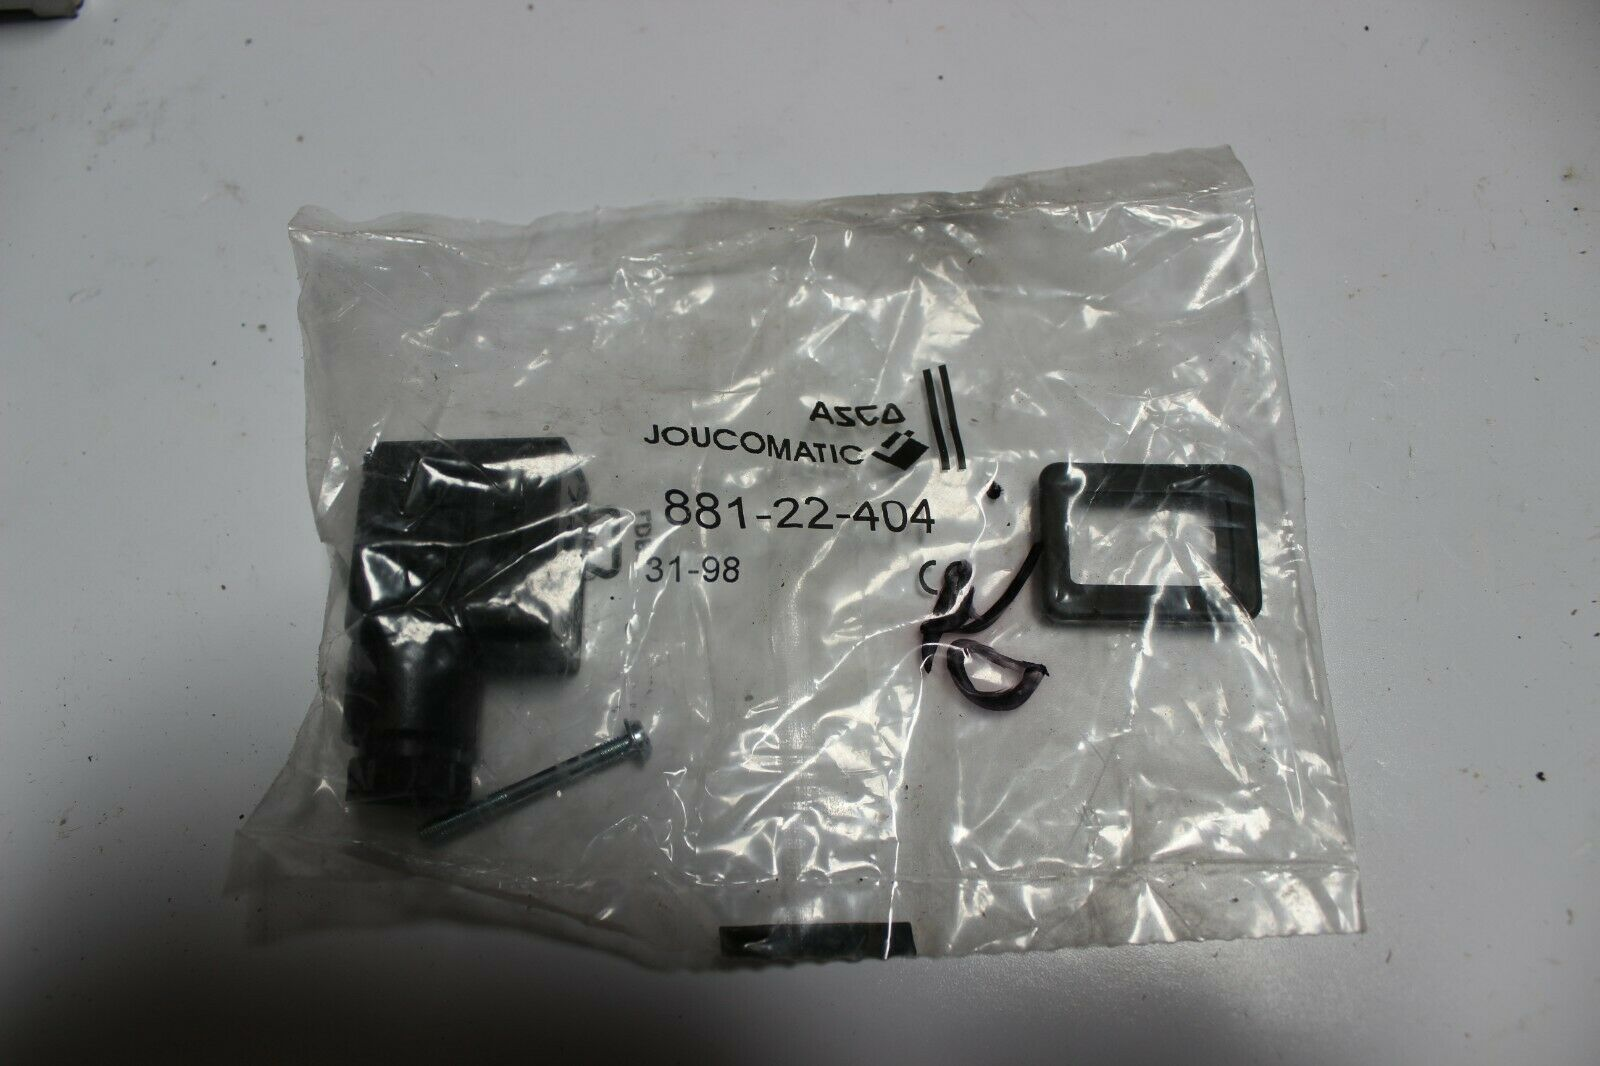 Asco 881-22-404 Joucomatic Connector Kit New Pack of 2